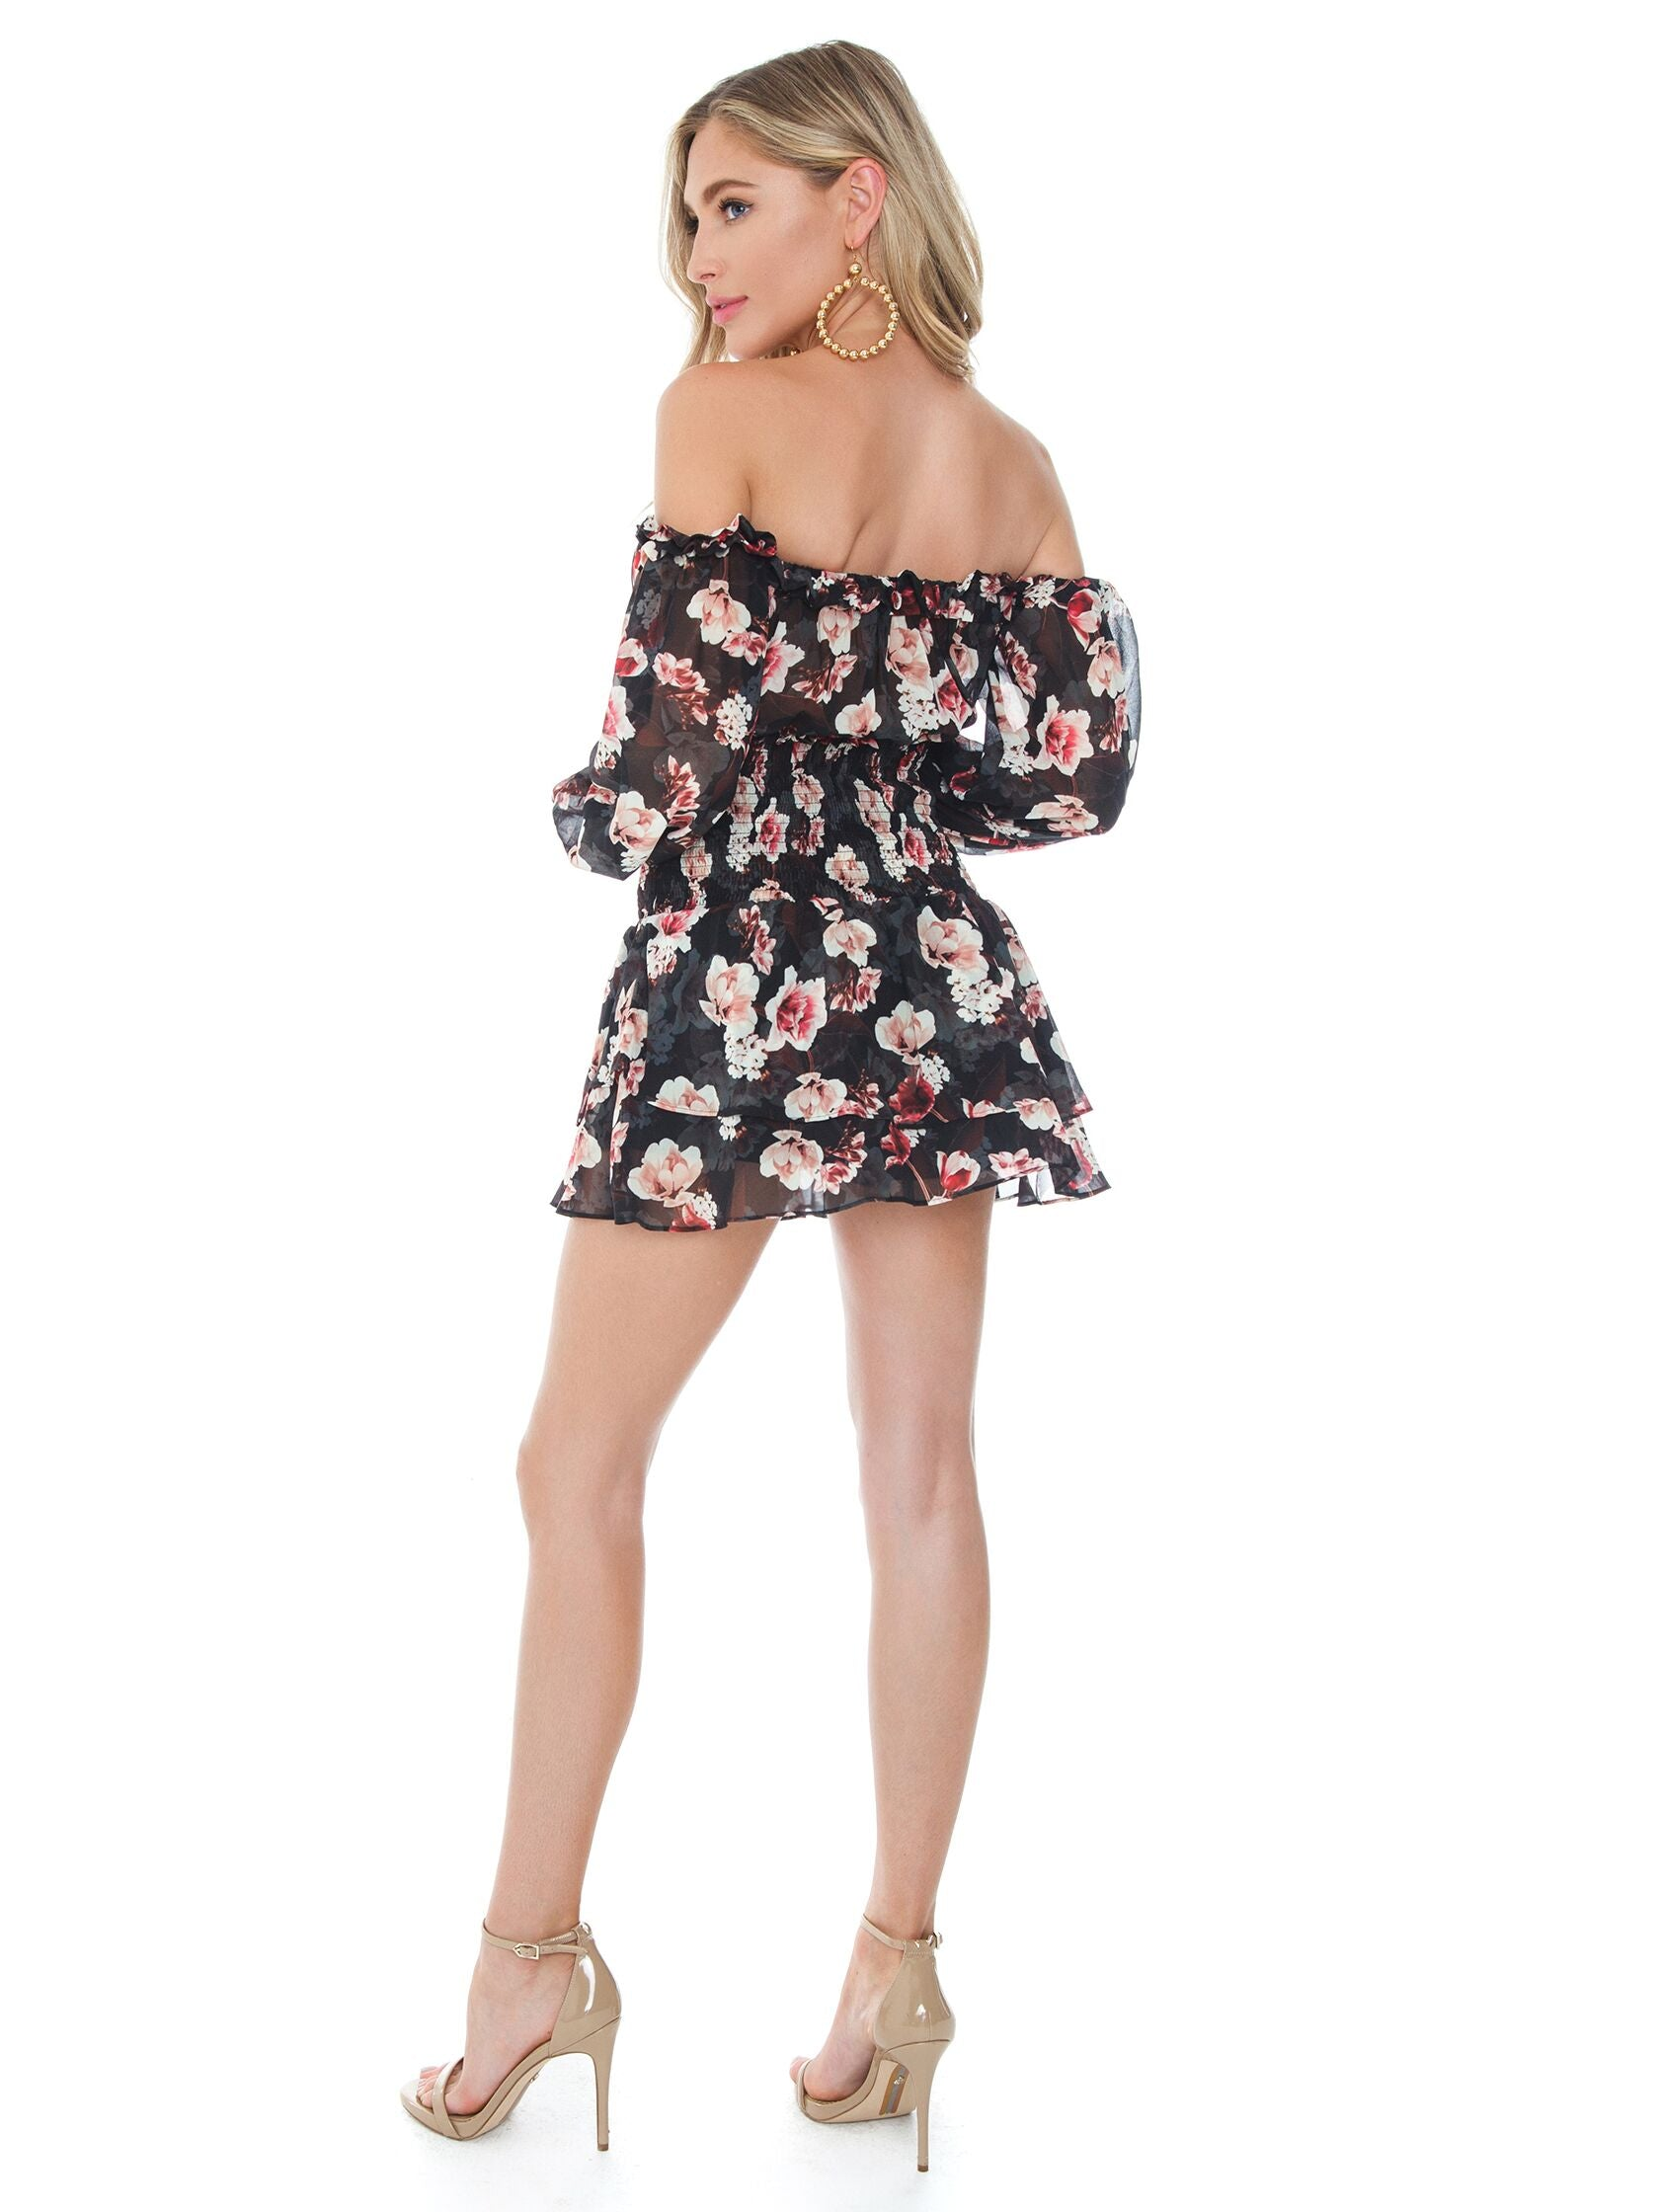 Women wearing a romper rental from Blue Life called Boho Sleeve Ballerina Romper